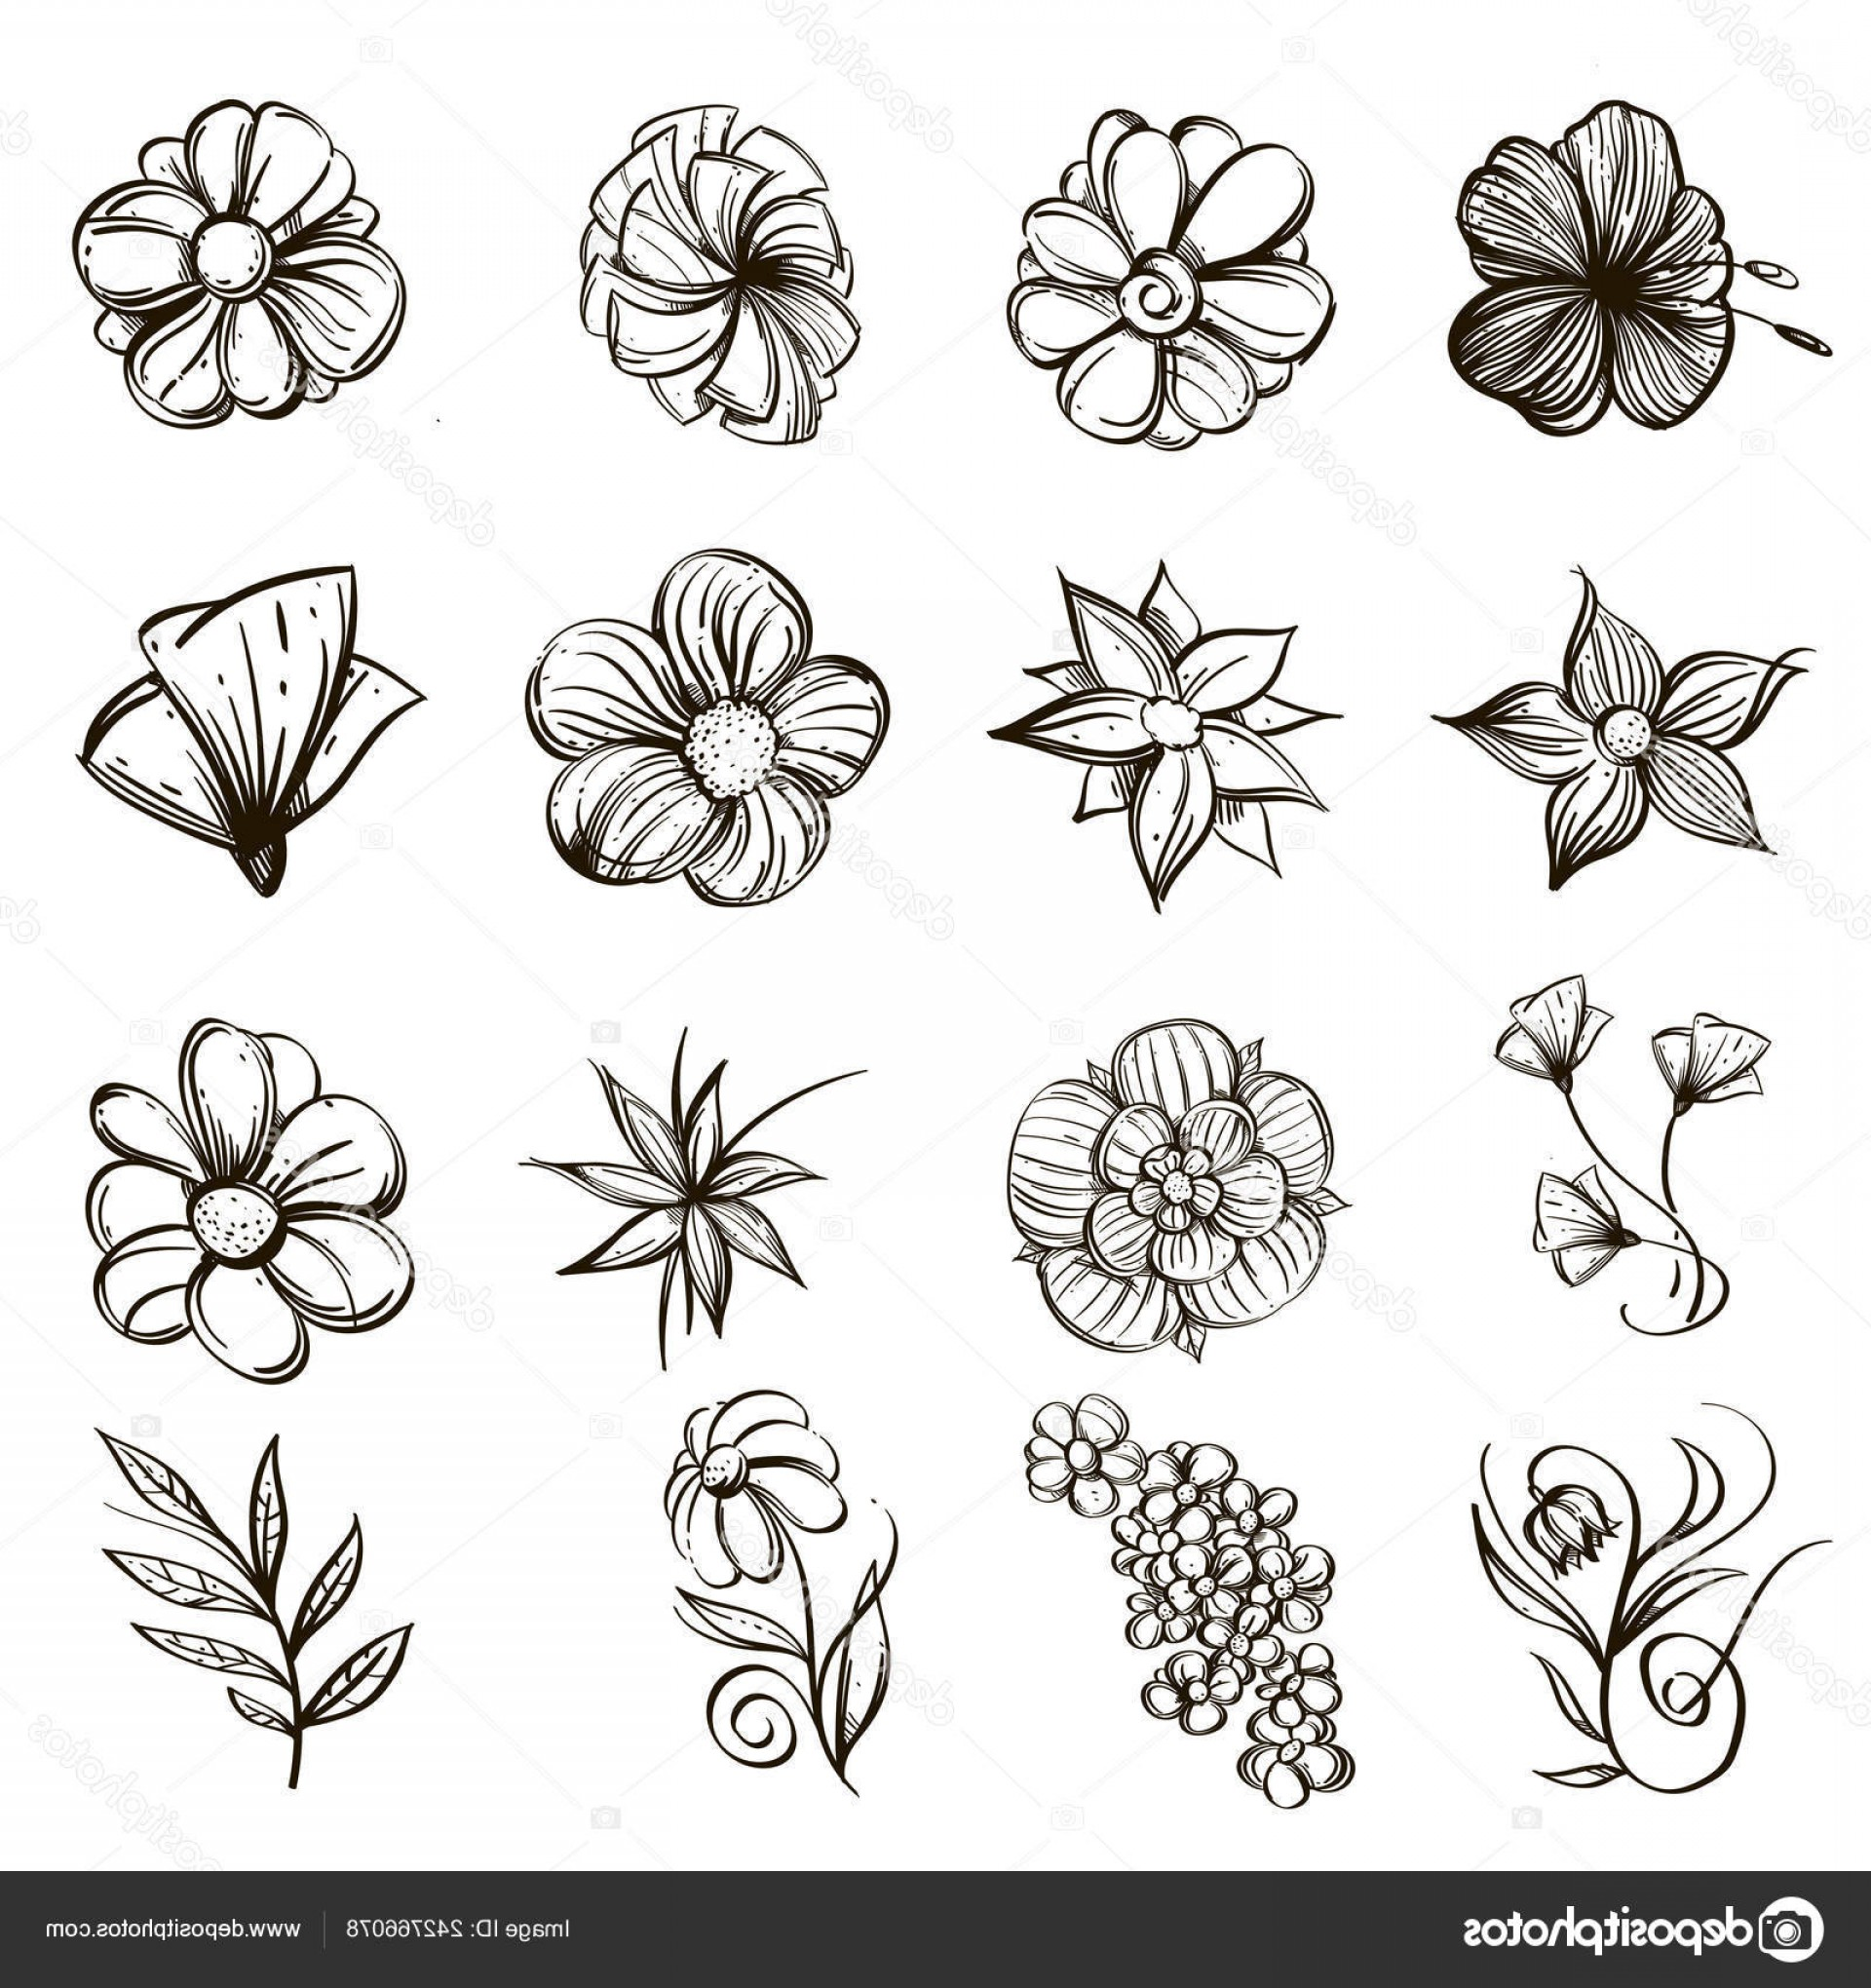 Wildflowers Outline Vector: Stock Illustration Wildflowers Set Outline Vector Illustrations